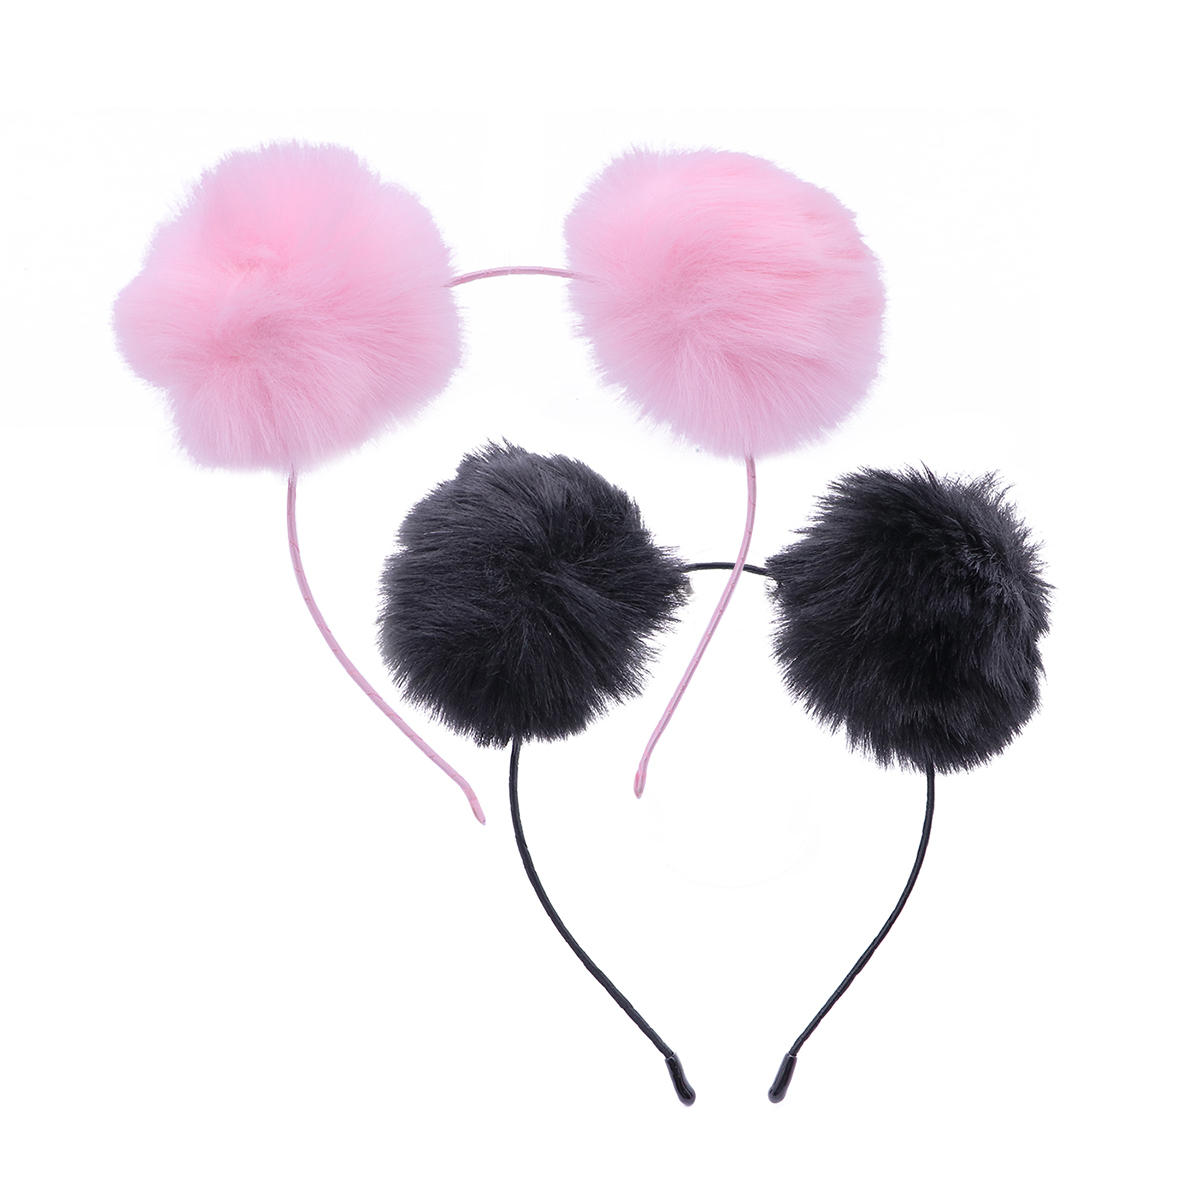 Enthusiastic 2pcs Cute Headband Cat Ears Pompom Ball Fluffy Ball Hair Accessories Hair Loop Headband For Daily Holiday Performance Party Buy One Get One Free